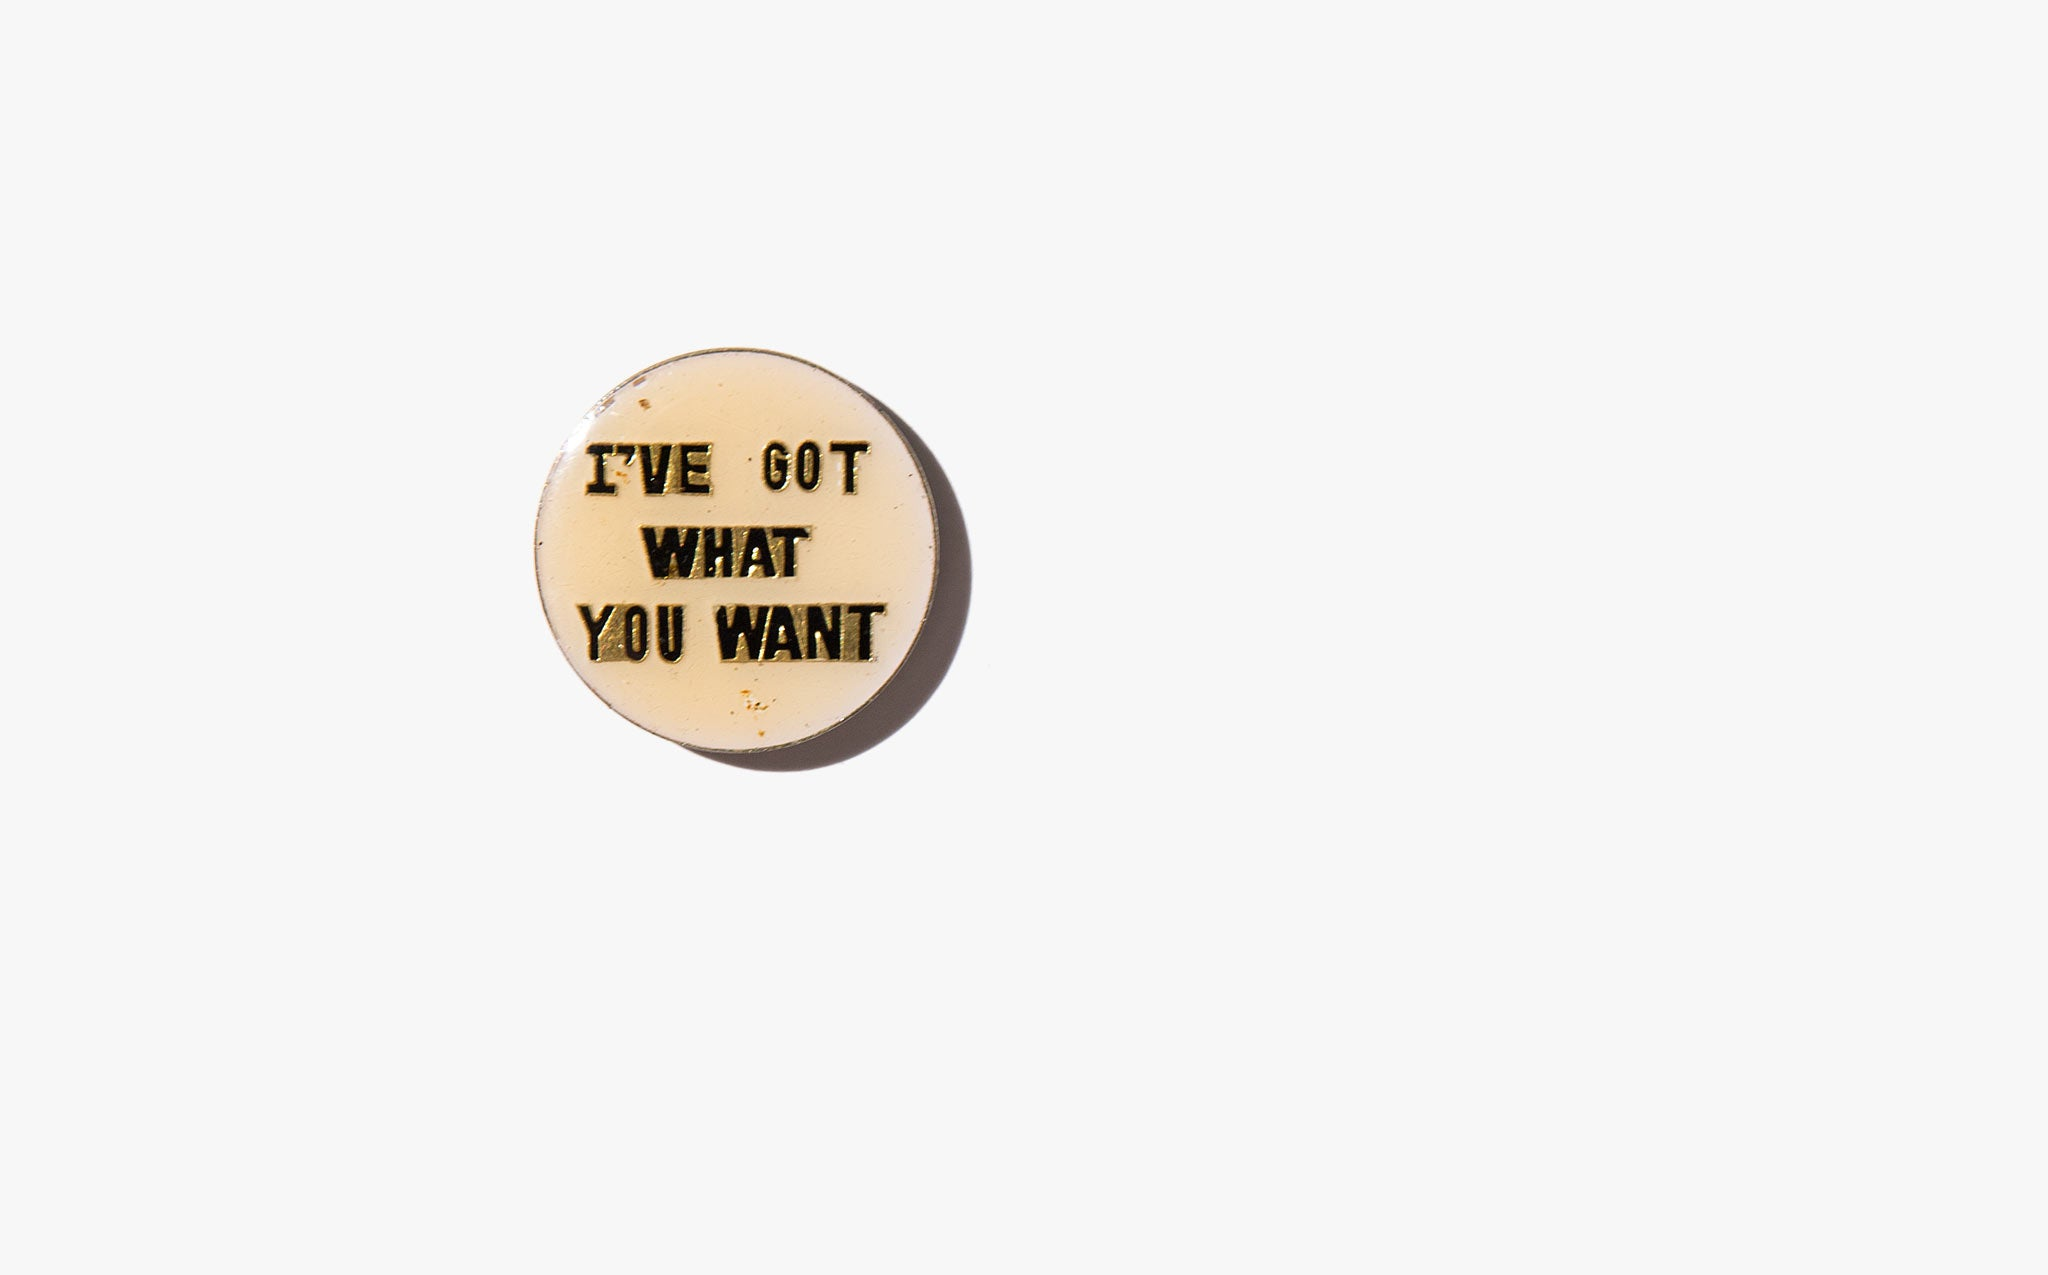 I've Got What You Want Vintage Pin